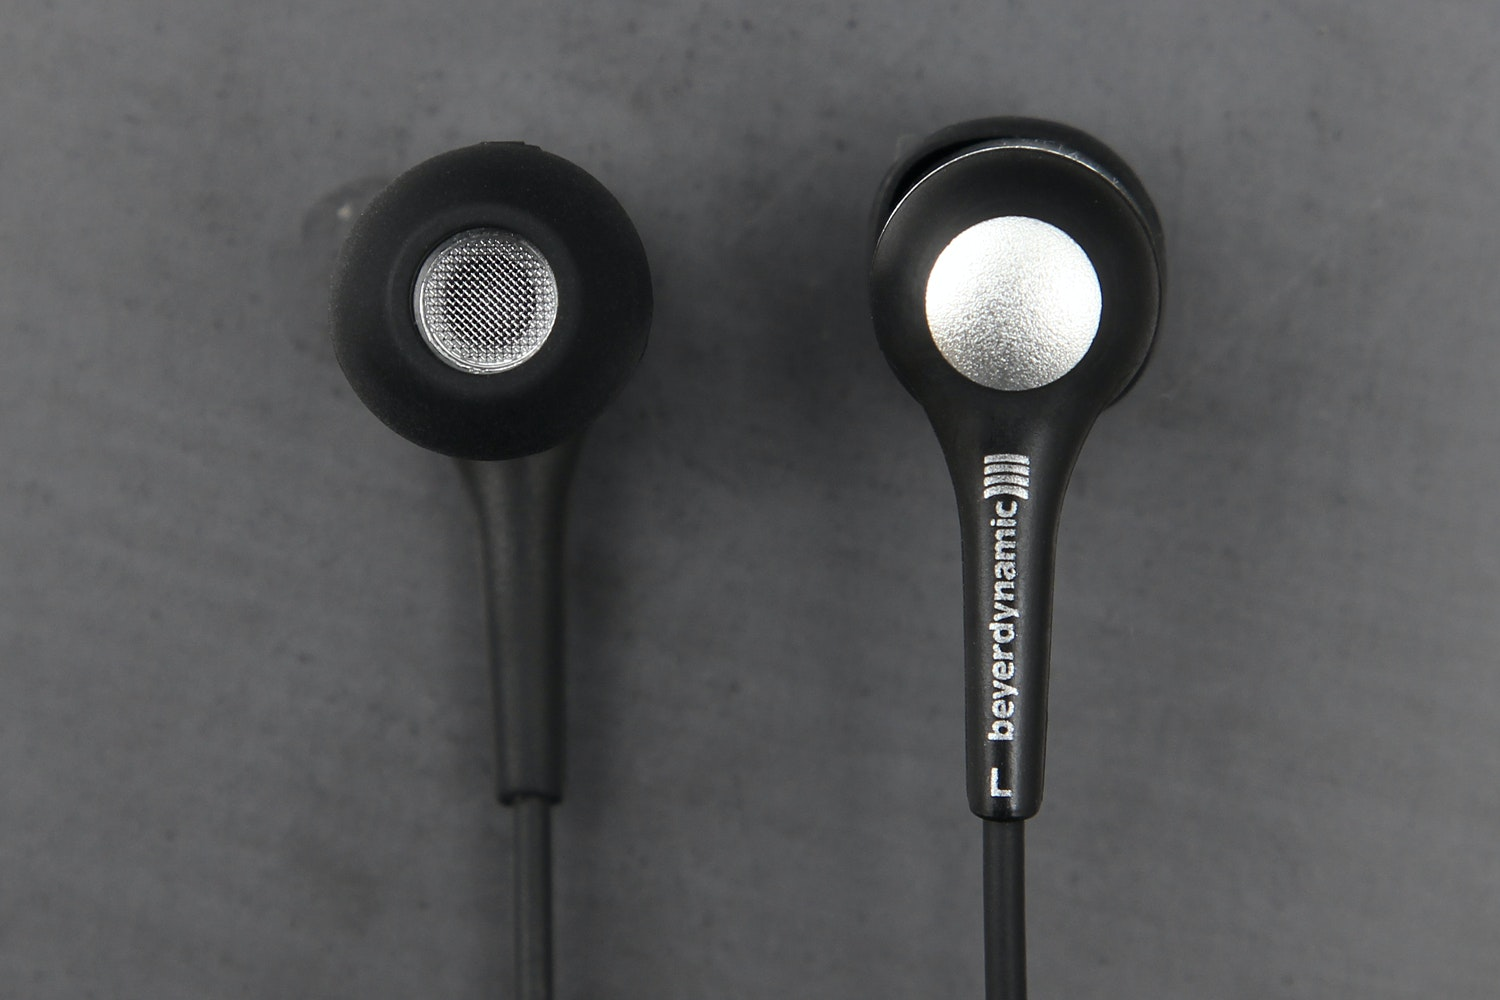 Beyerdynamic DTX 72 iE Earphones